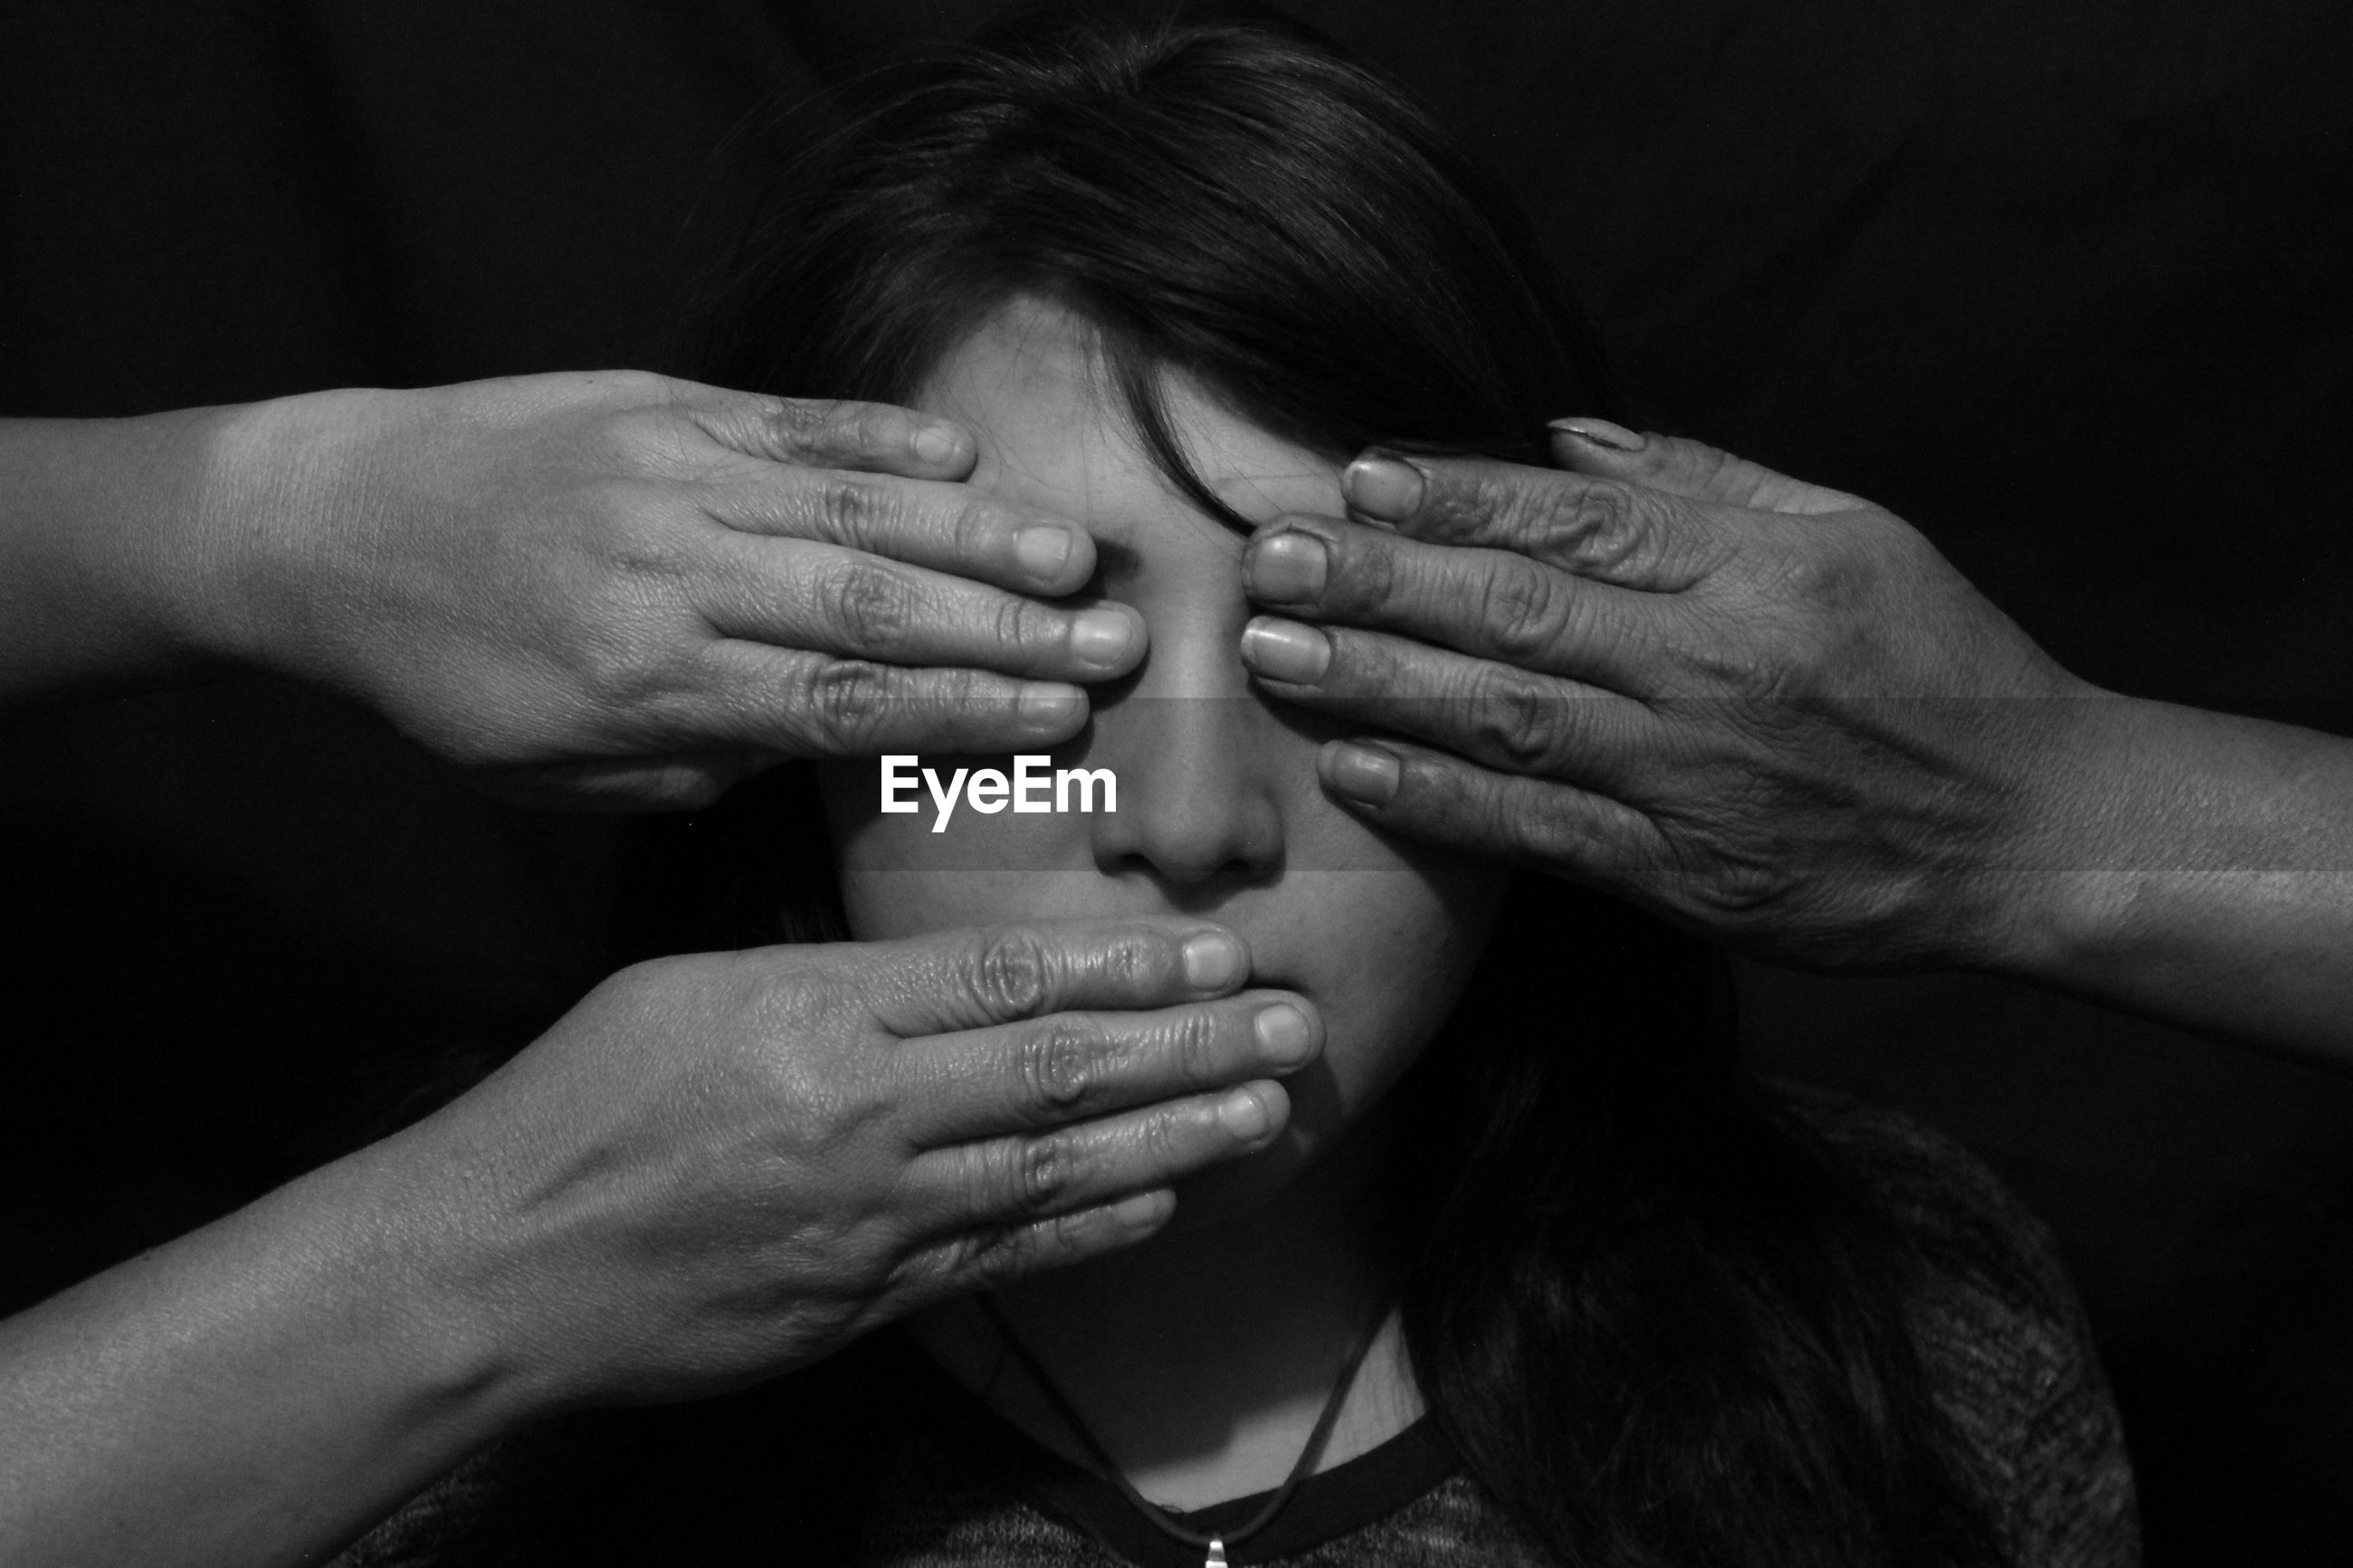 Close-up of a hands on woman's face